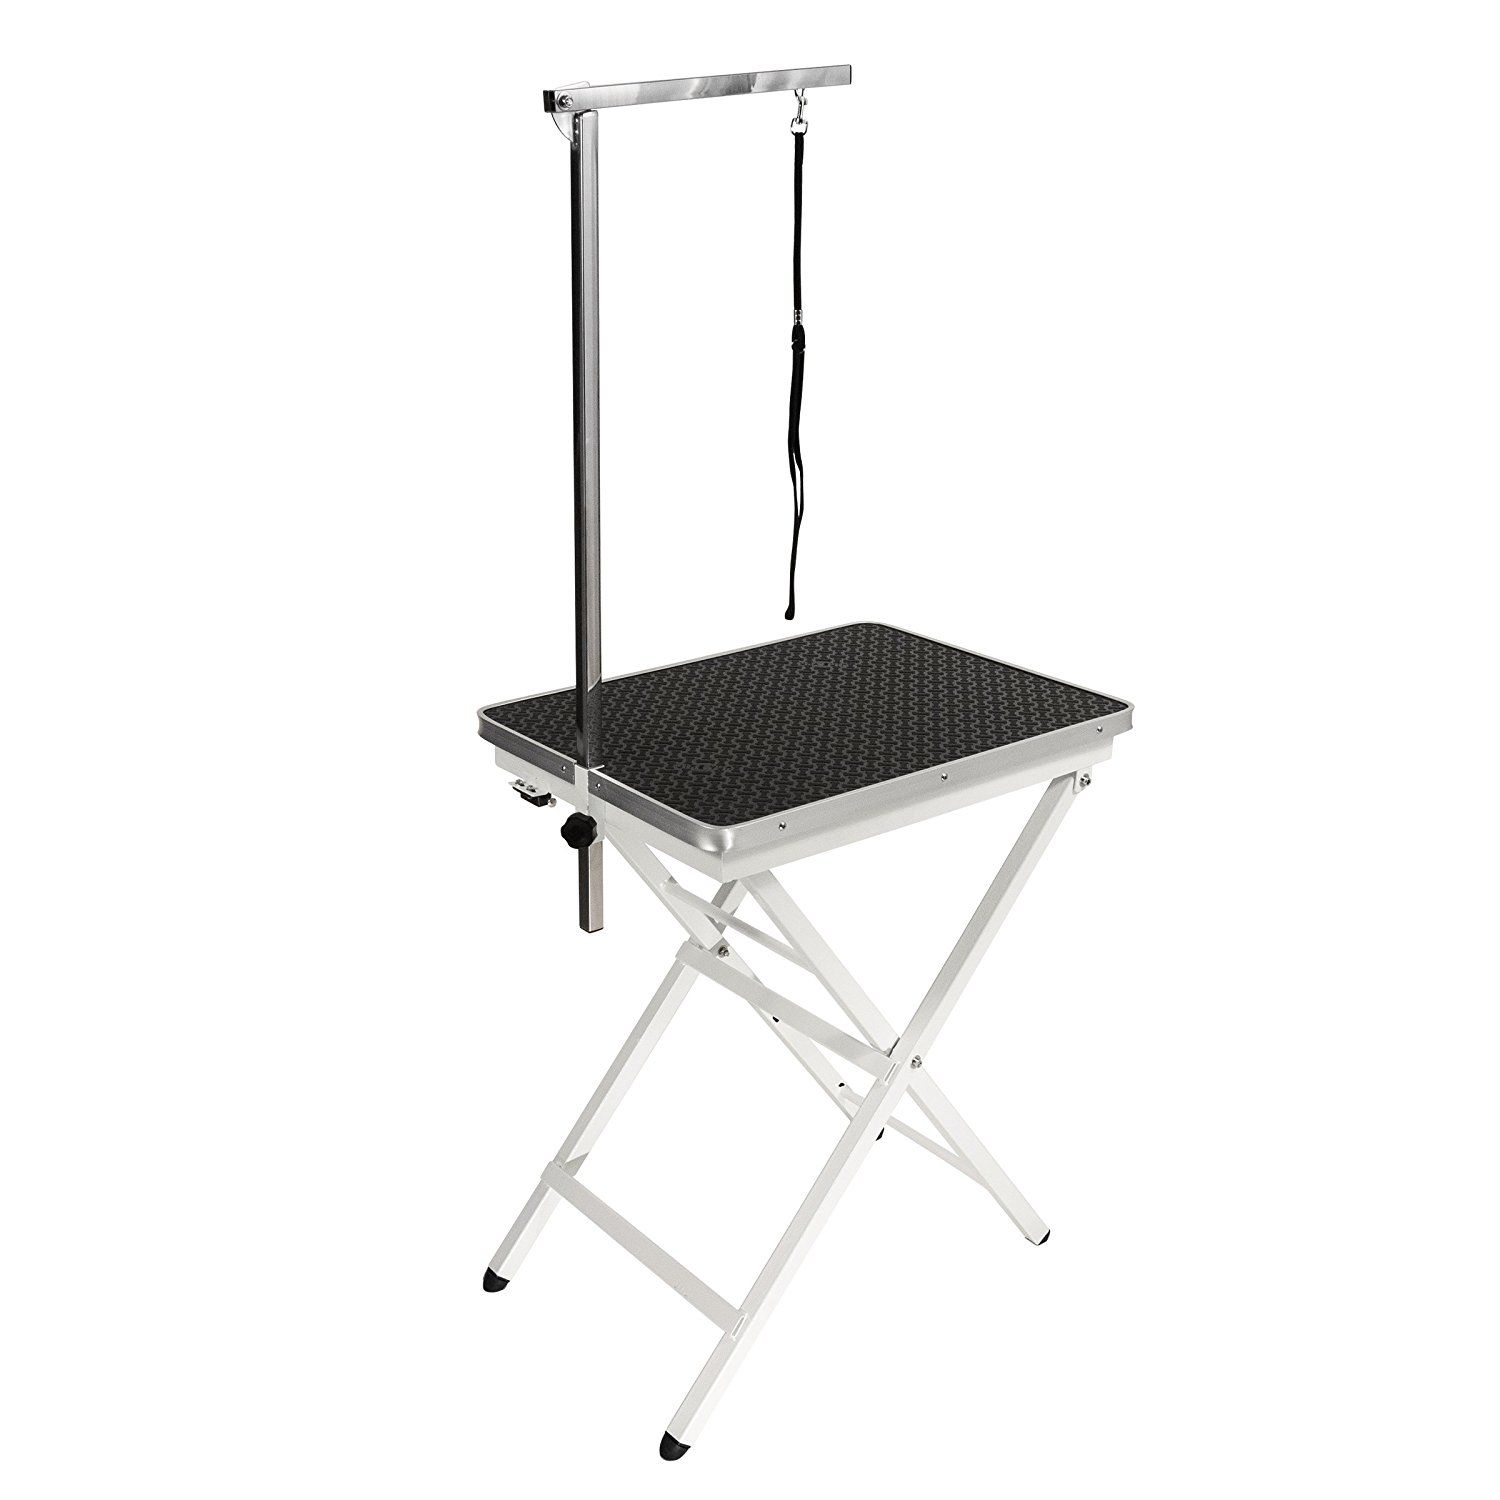 Mini Size Pet Dog Portable Grooming Table By Flying Pig Grooming